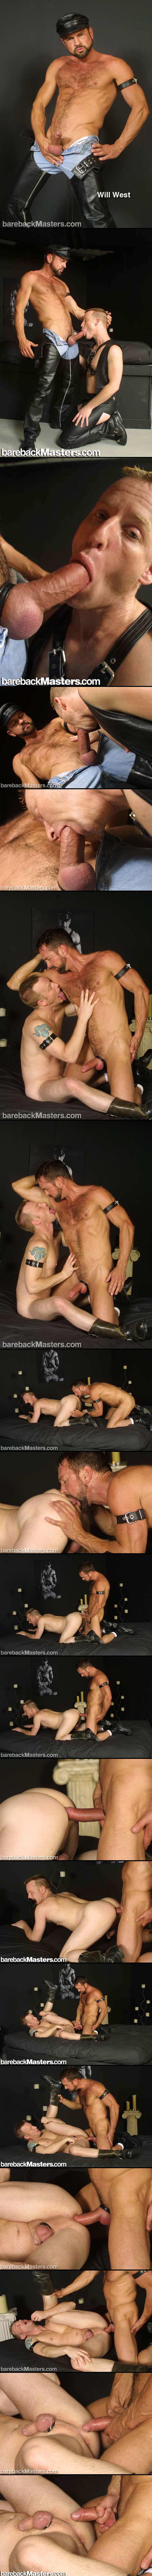 BarebackMasters.com presents HAIRY DADDY HUNGRY SLAVE